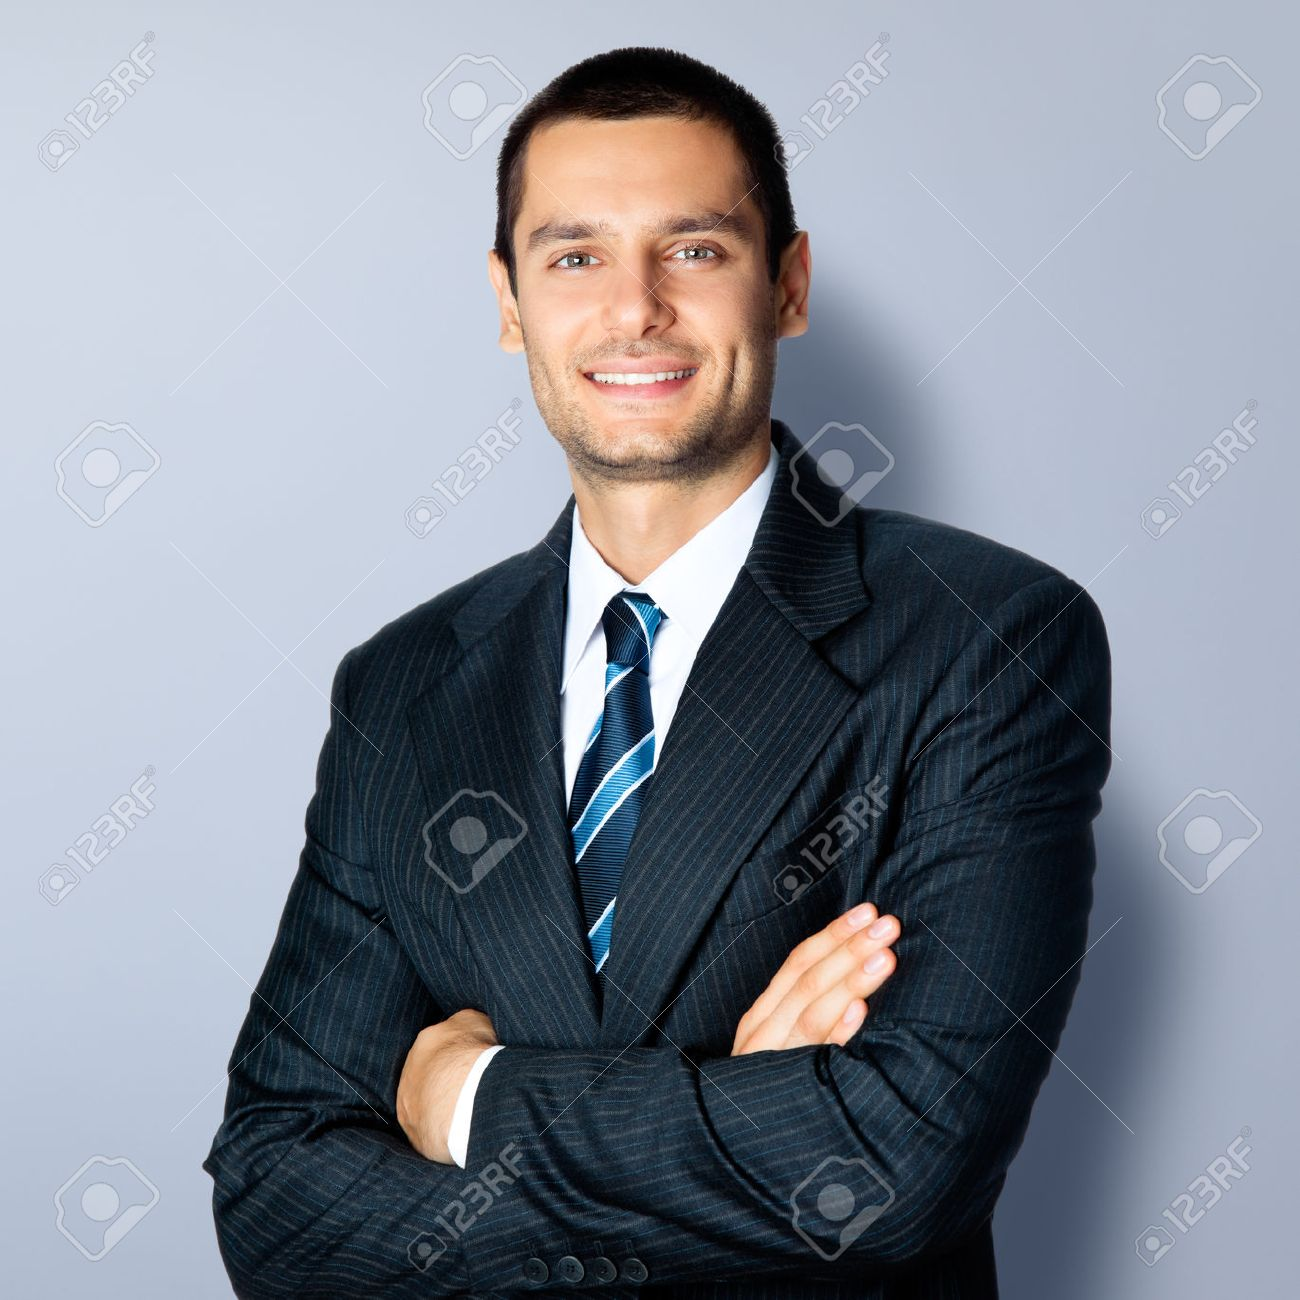 Portrait of happy smiling businessman in crossed arms pose, in black confident suit, against grey background. Caucasian male model at studio shot. Business and success concept. - 41221598